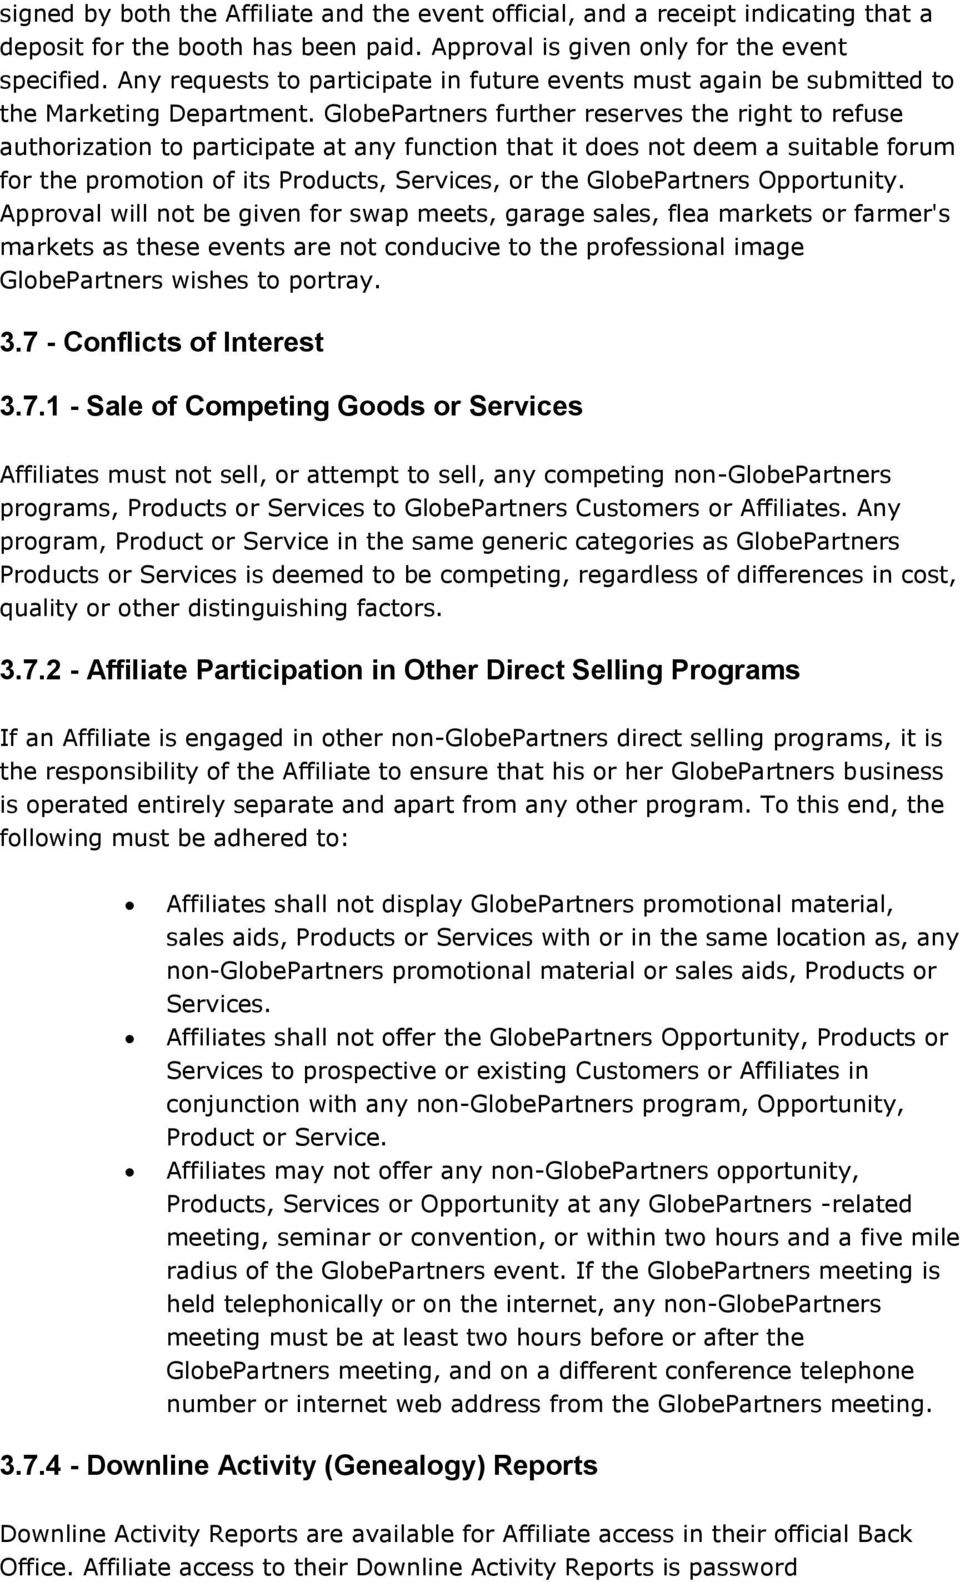 GlobePartners further reserves the right to refuse authorization to participate at any function that it does not deem a suitable forum for the promotion of its Products, Services, or the